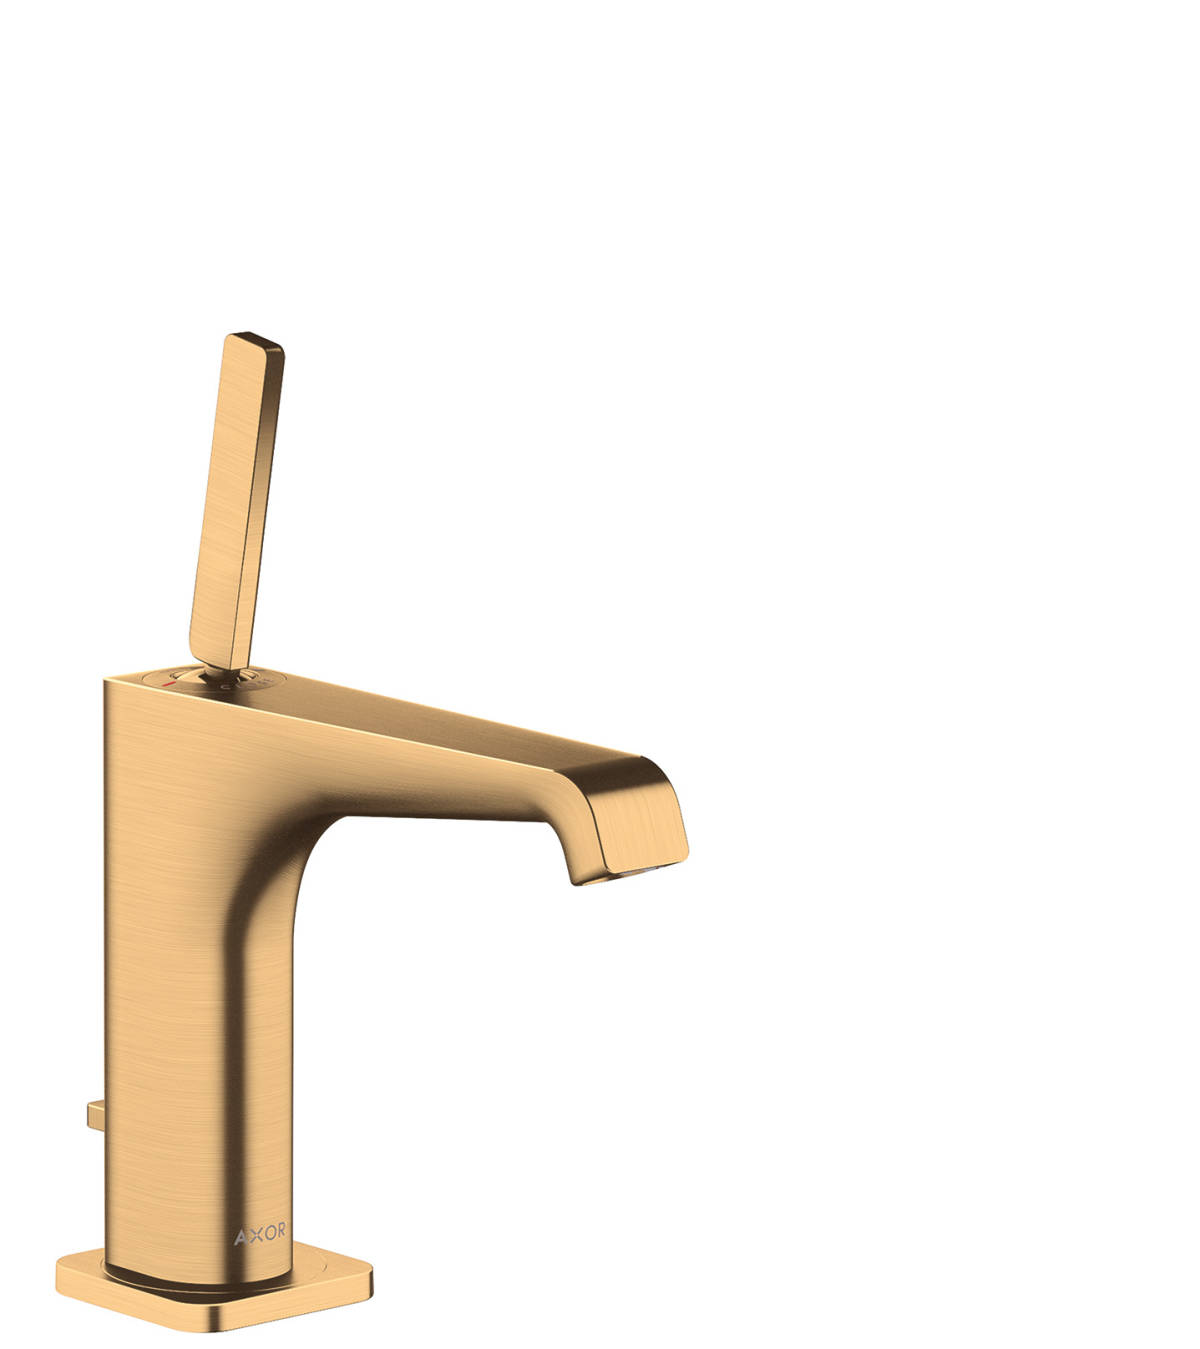 Single lever basin mixer 130 with pop-up waste set, Brushed Brass, 36100950